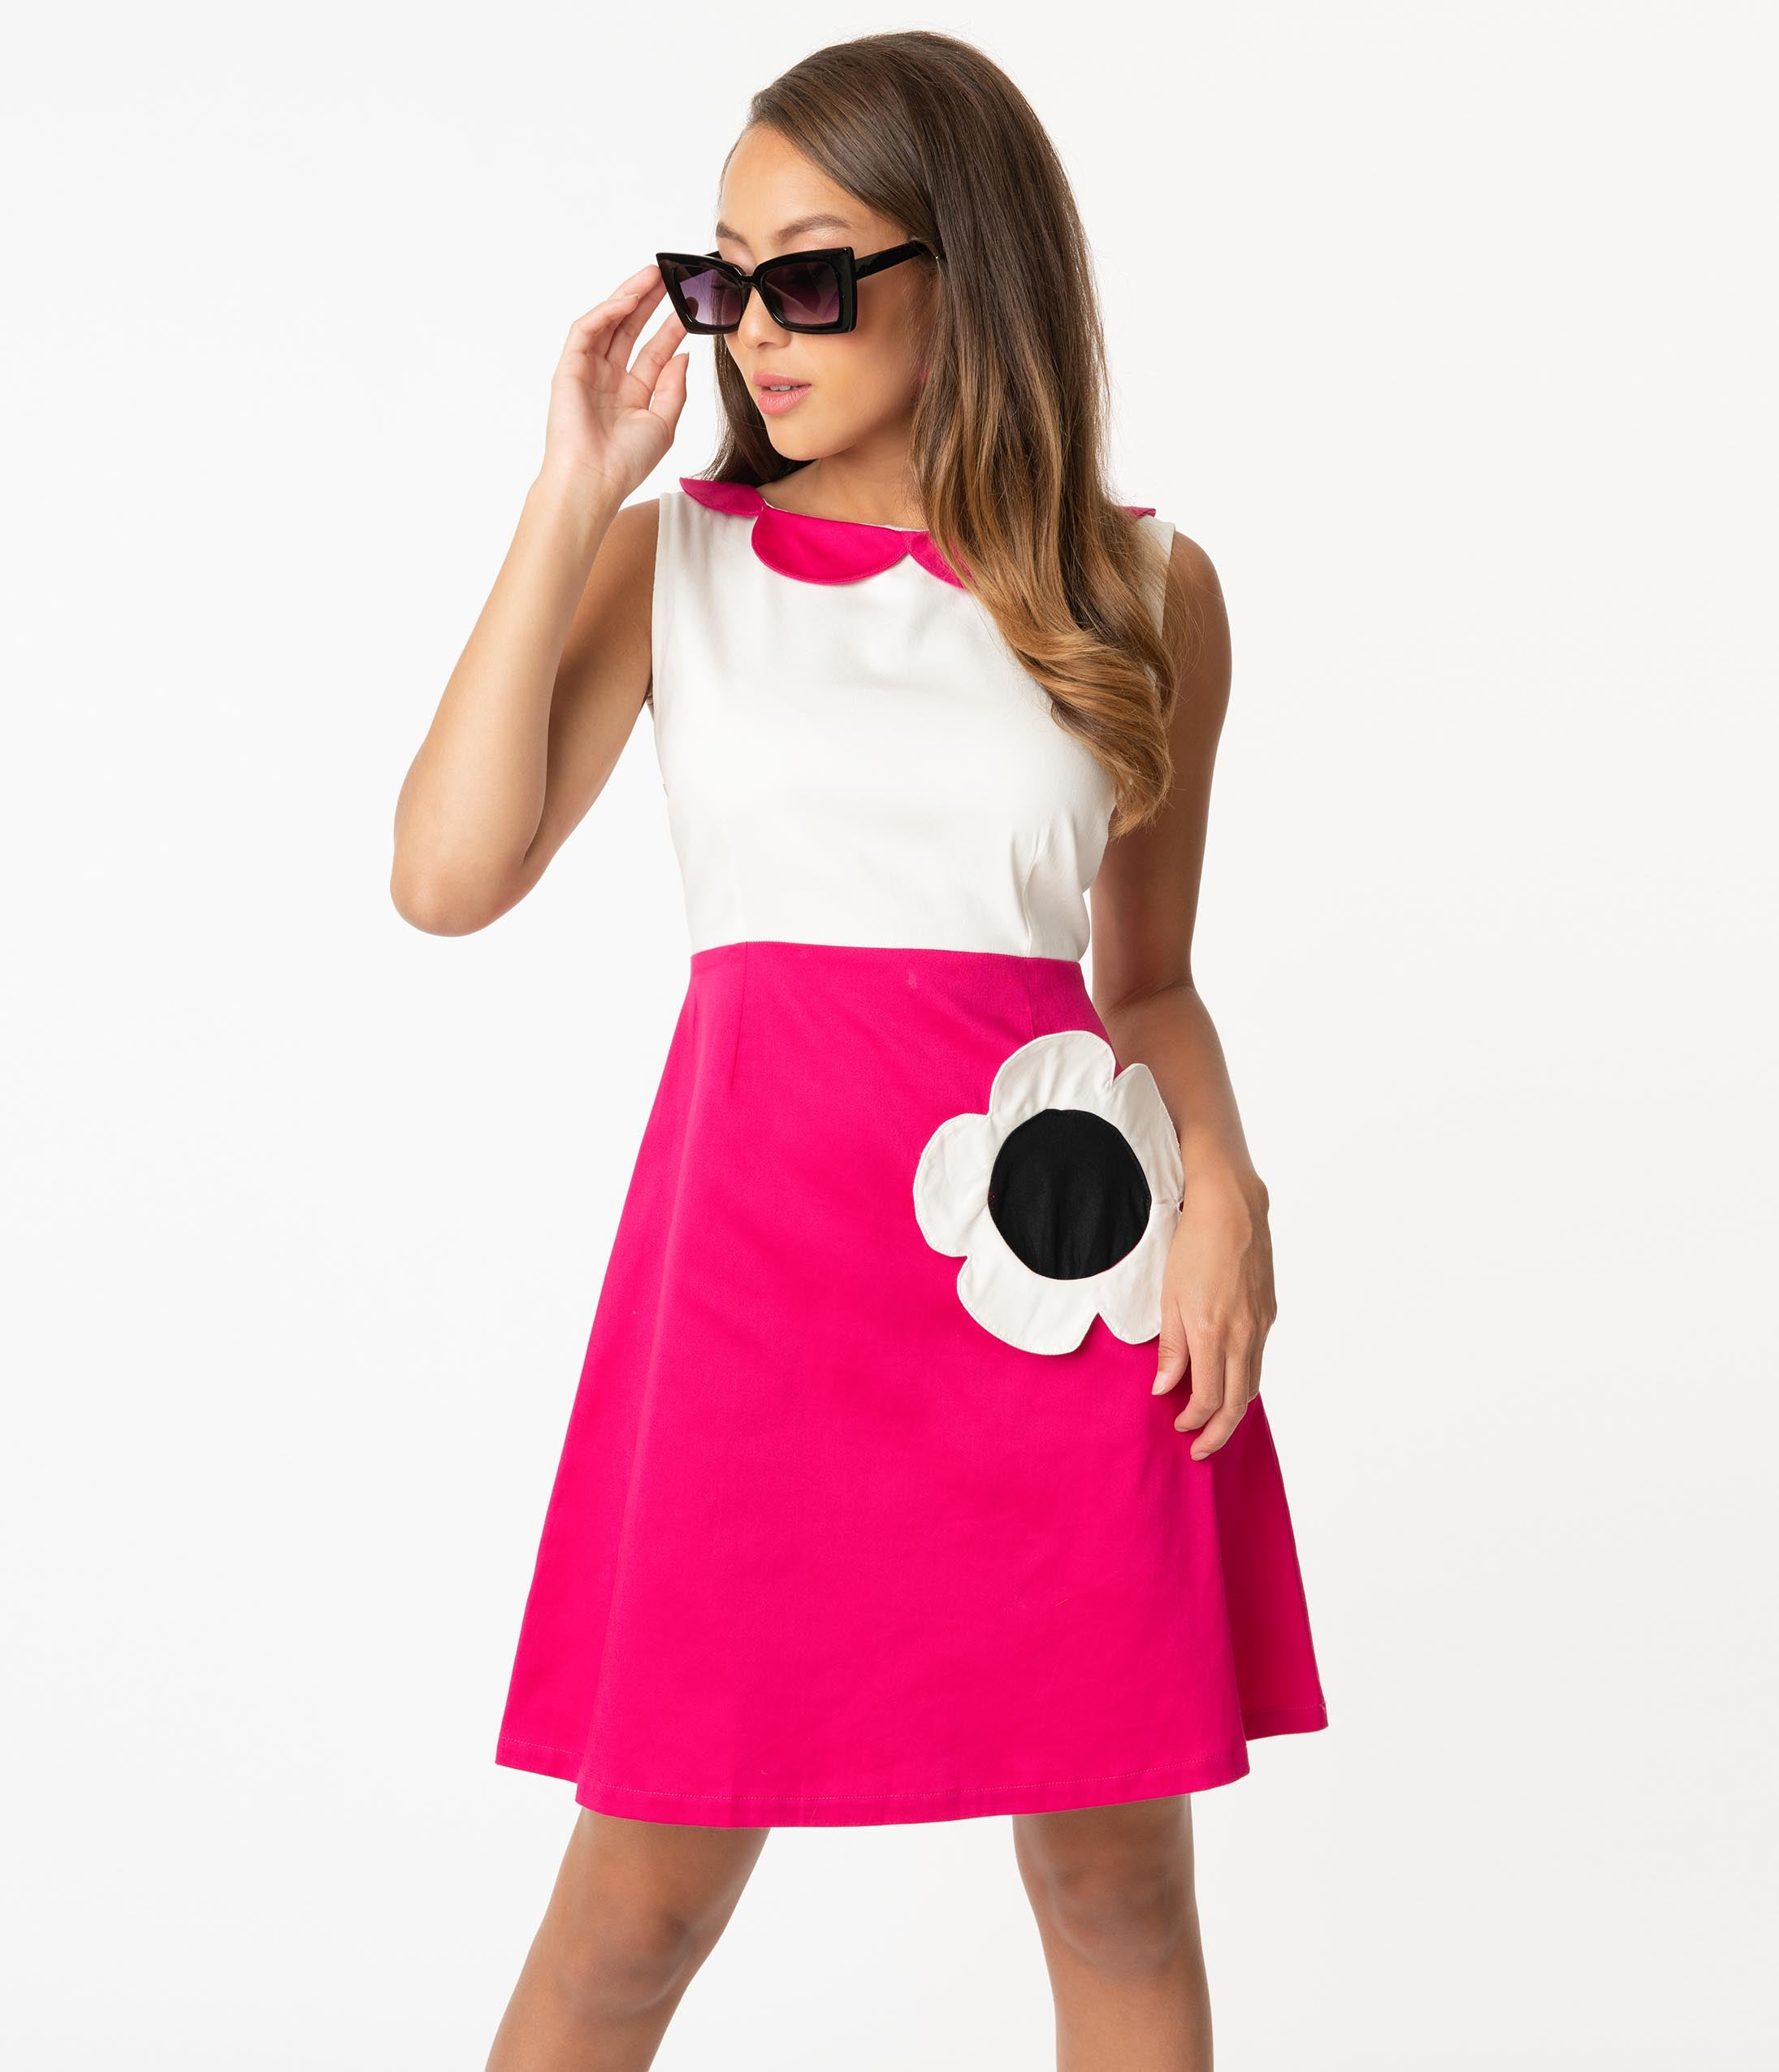 60s Mod Clothing Outfit Ideas Smak Parlour Hot Pink  White Flower Model Maven Flare Dress $62.00 AT vintagedancer.com